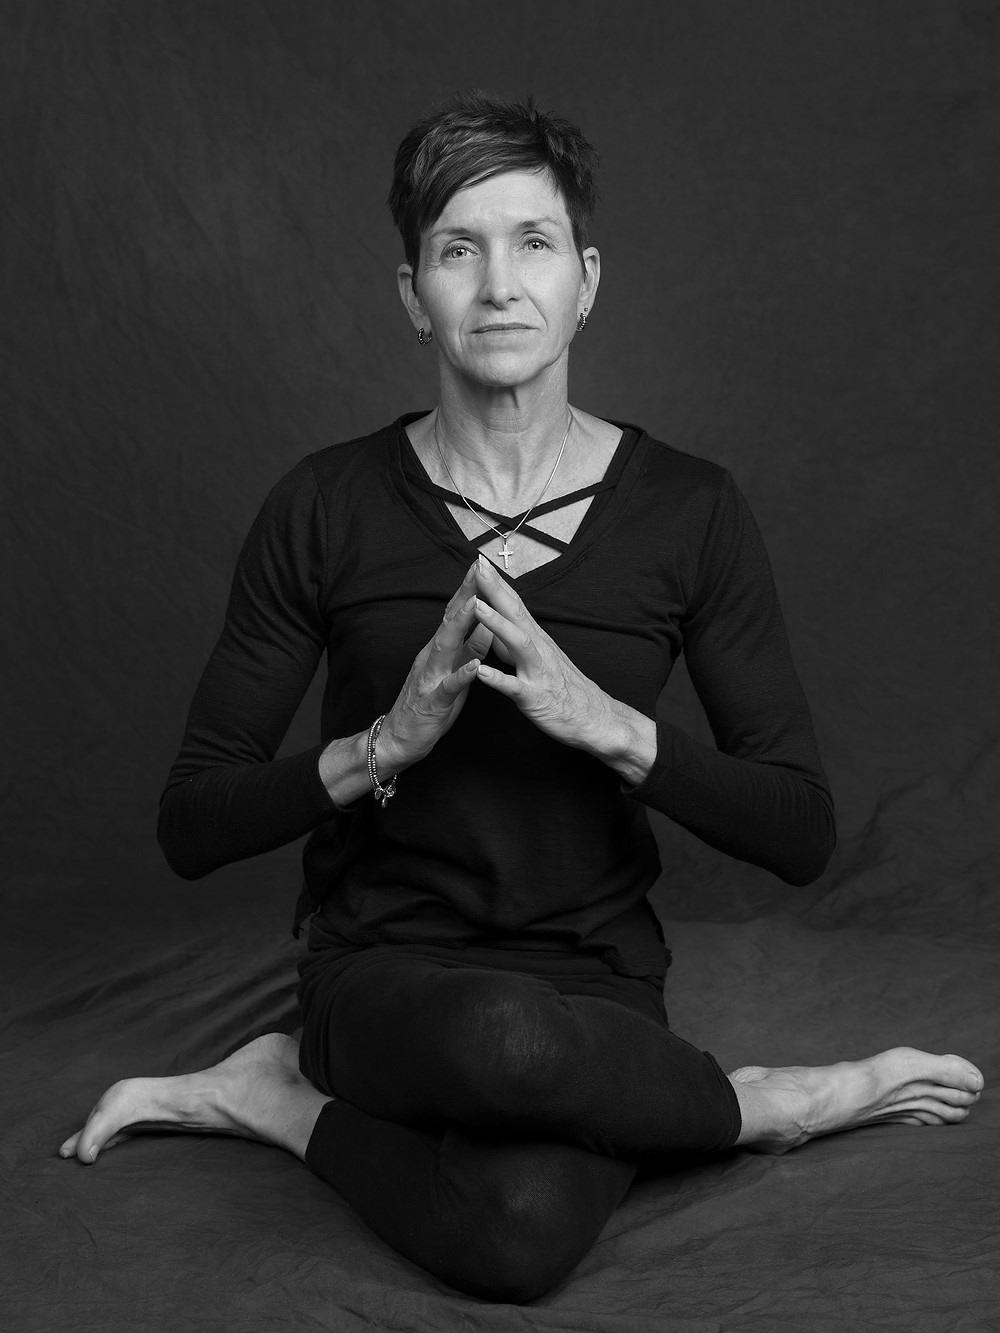 Golden, Colorado Portrait Photographer - yoga instructor in black and white